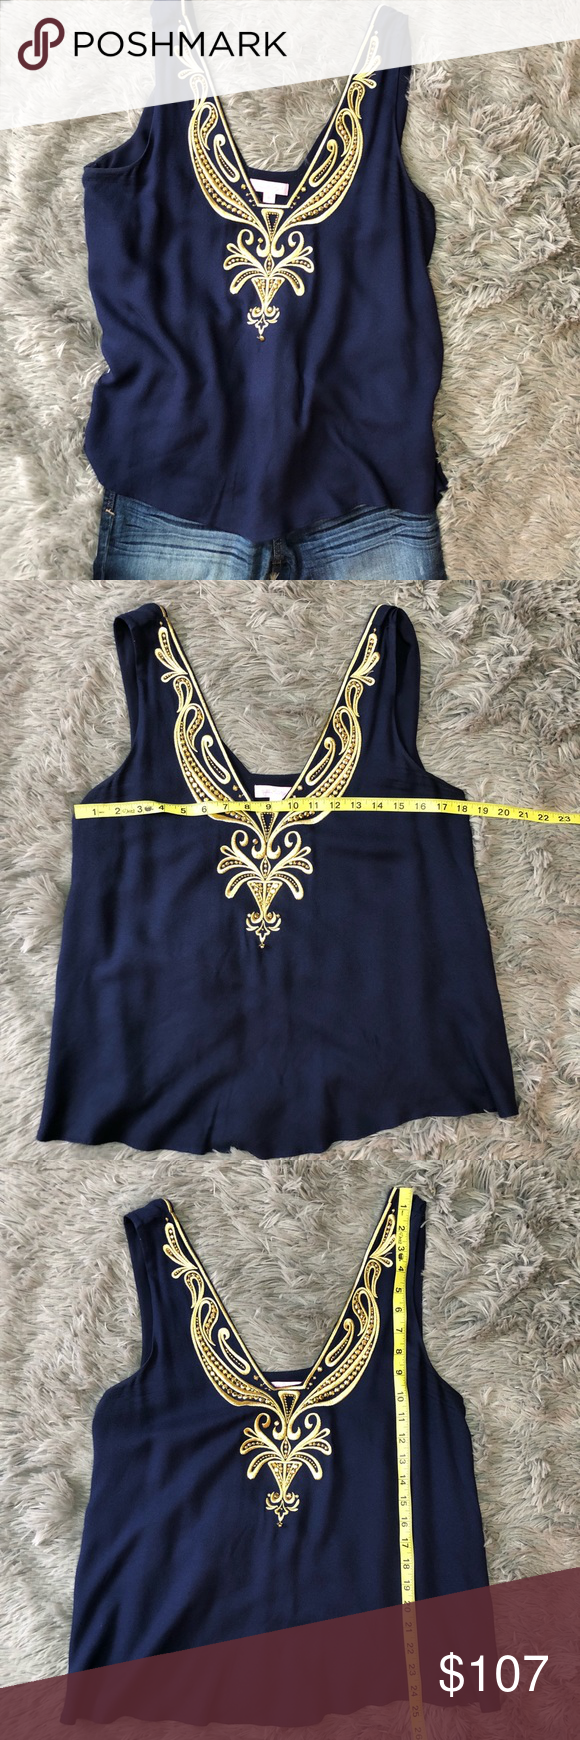 Lilly Pulitzer   Owen Sleeveless Shirt Lilly Pulitzer Owen Top in Navy with gold detail This top is...